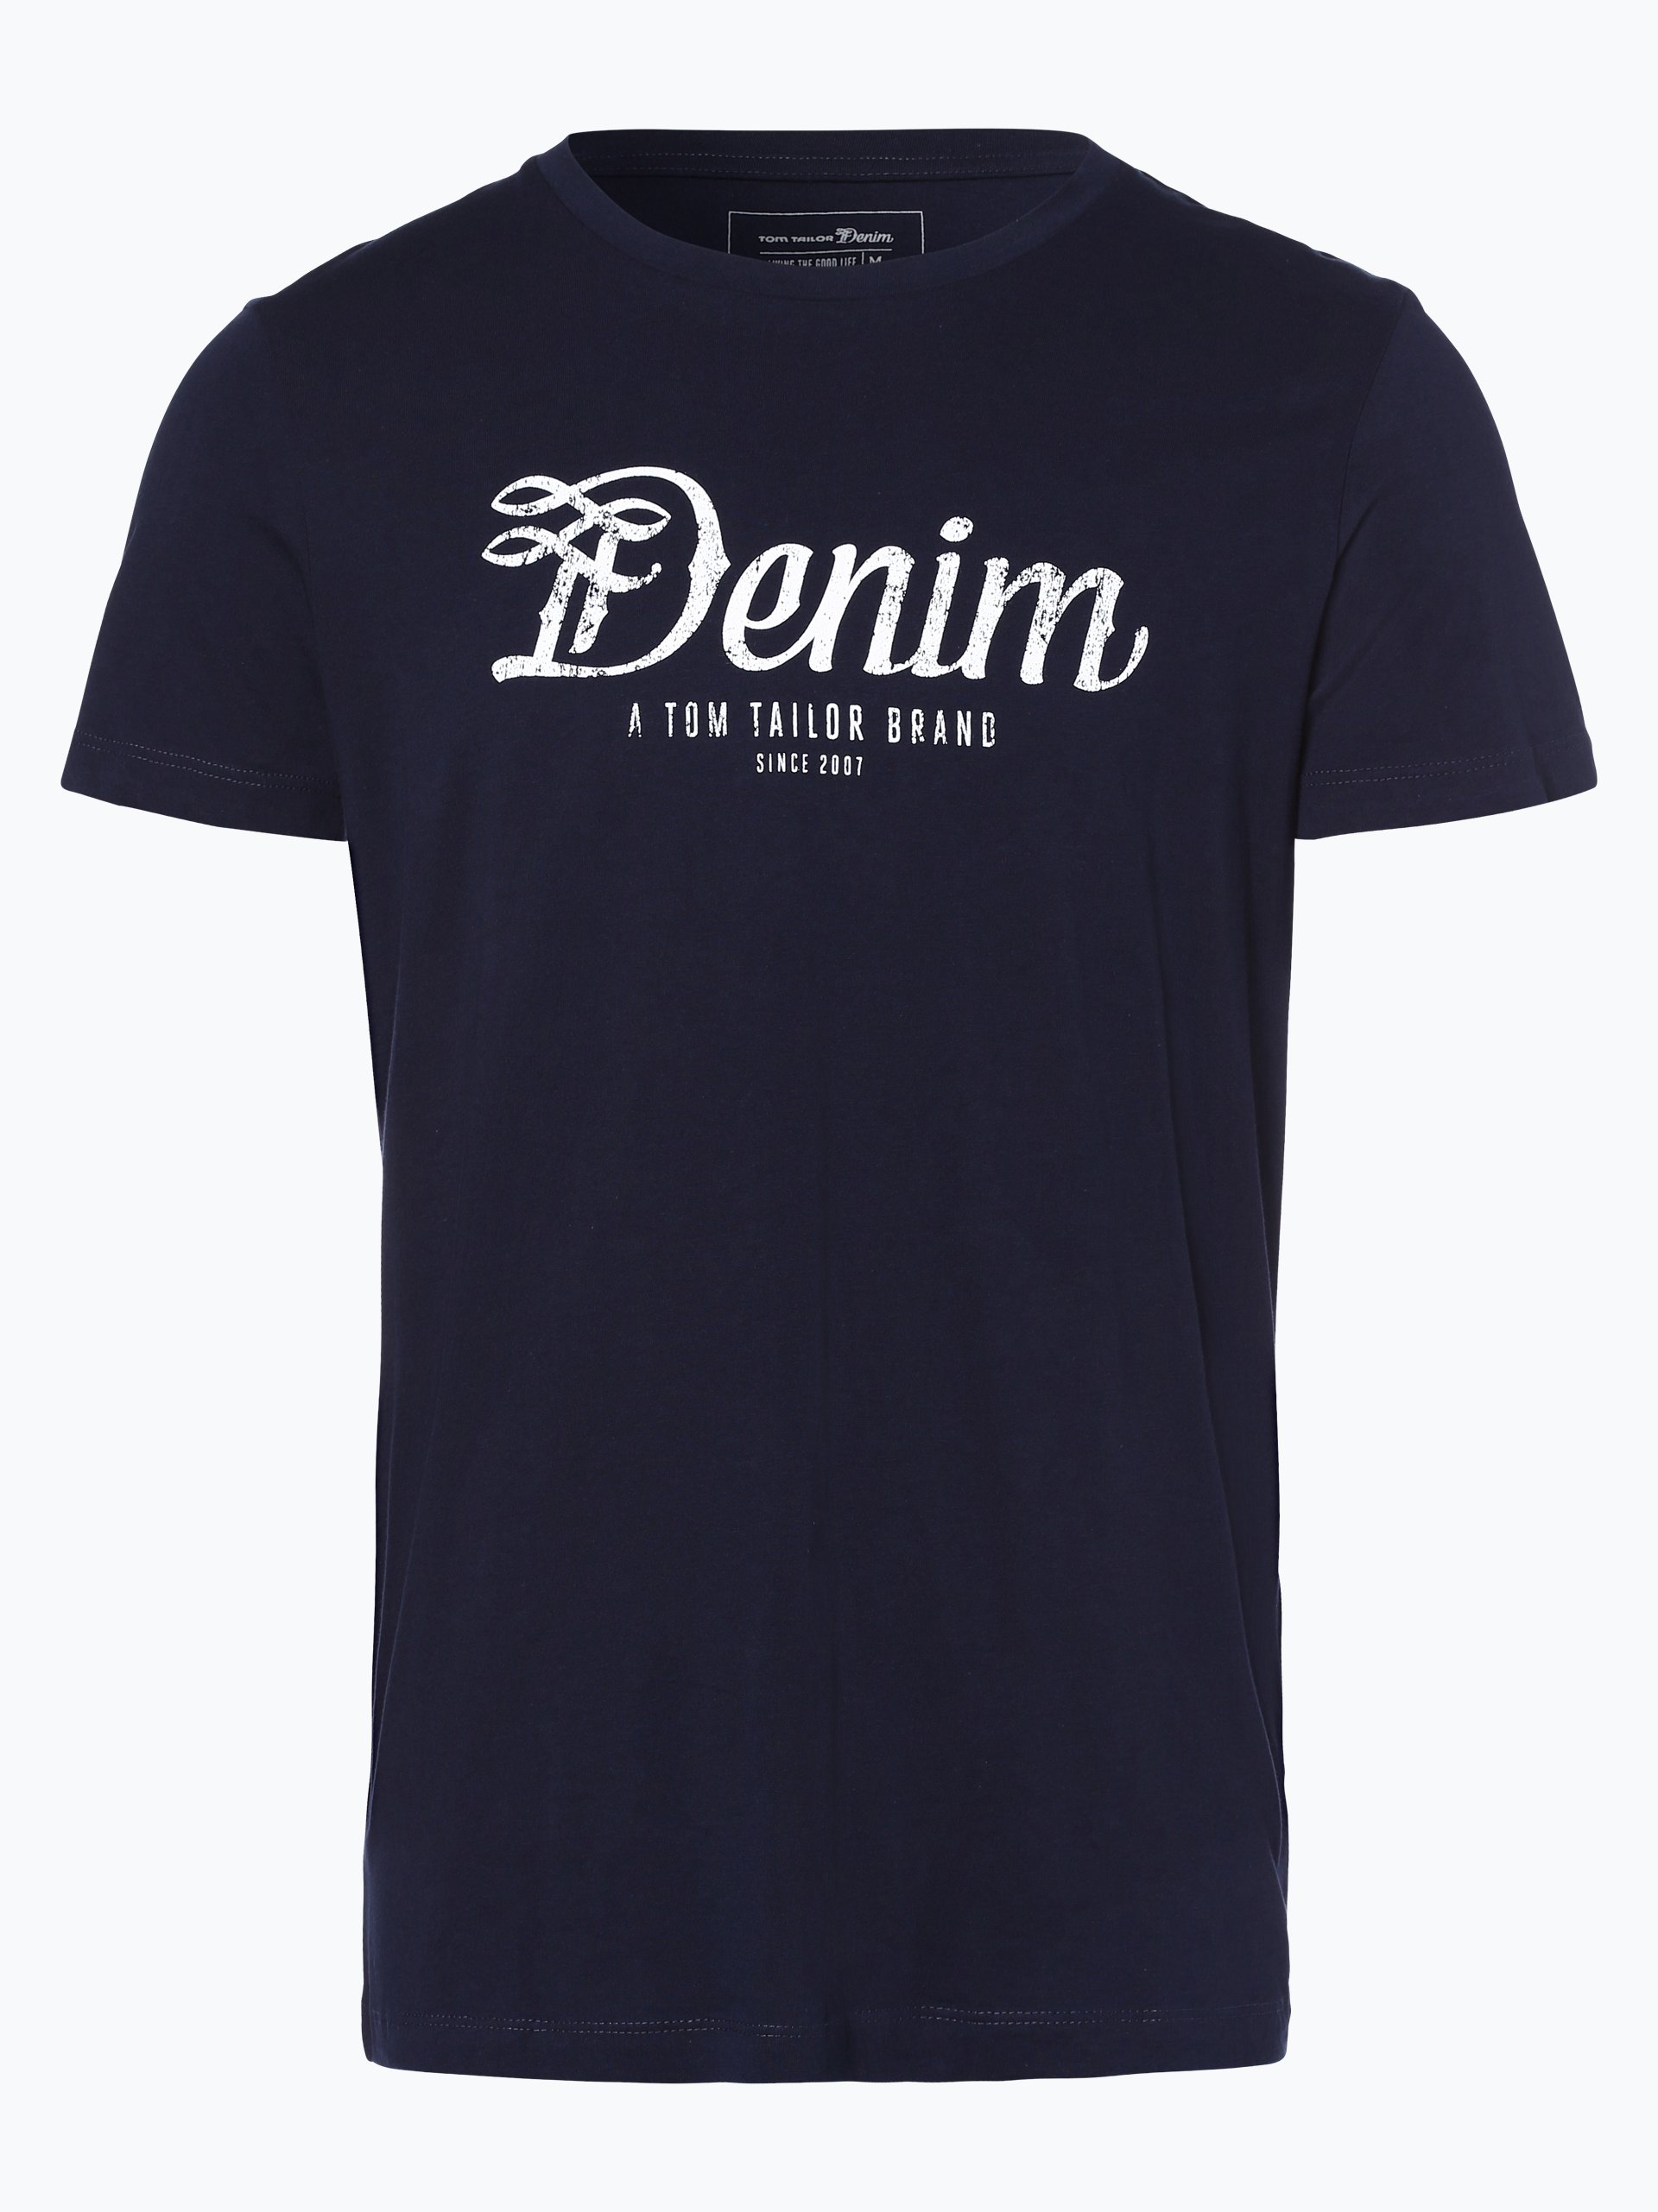 Tom Tailor Denim Herren T-Shirt